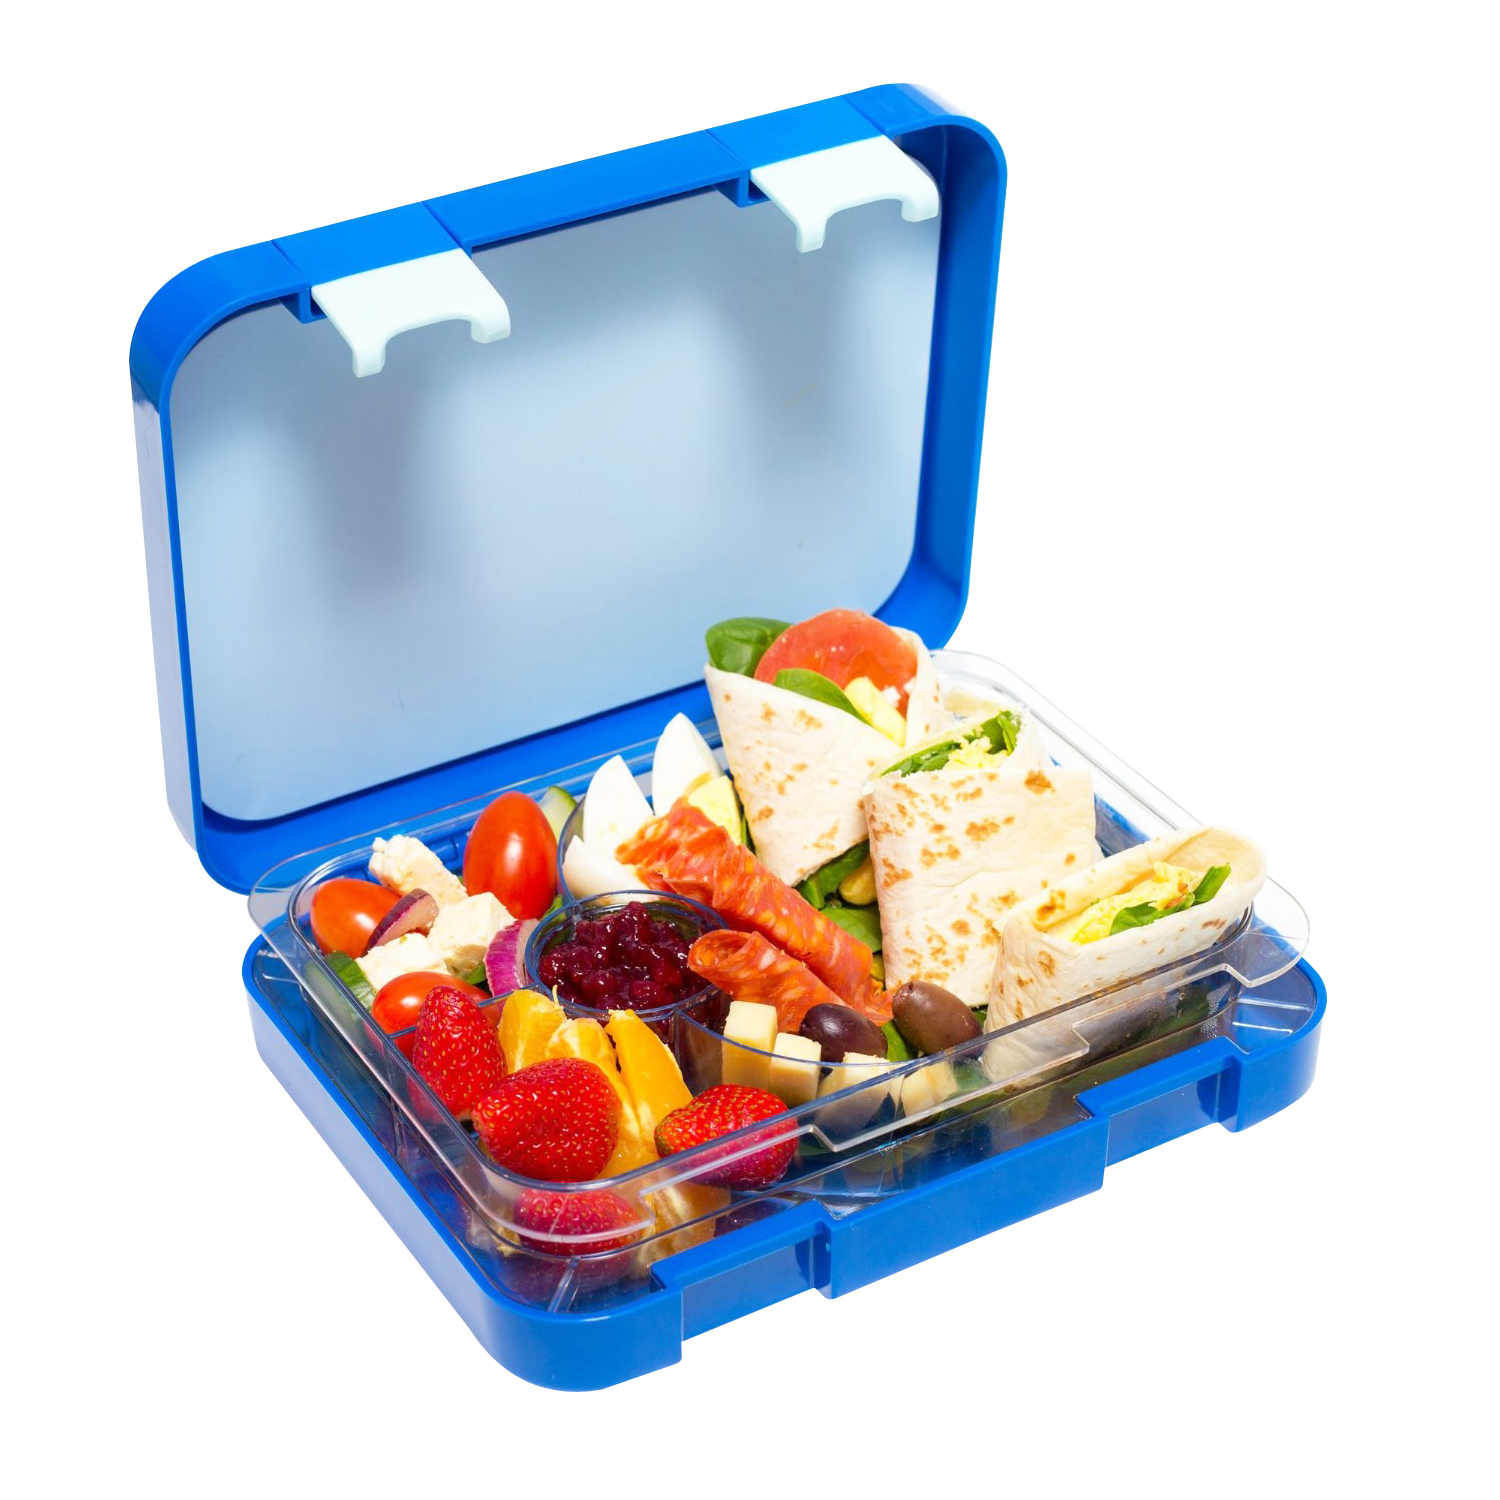 Lunch Box PNG Transparent Image - Lunch Box PNG